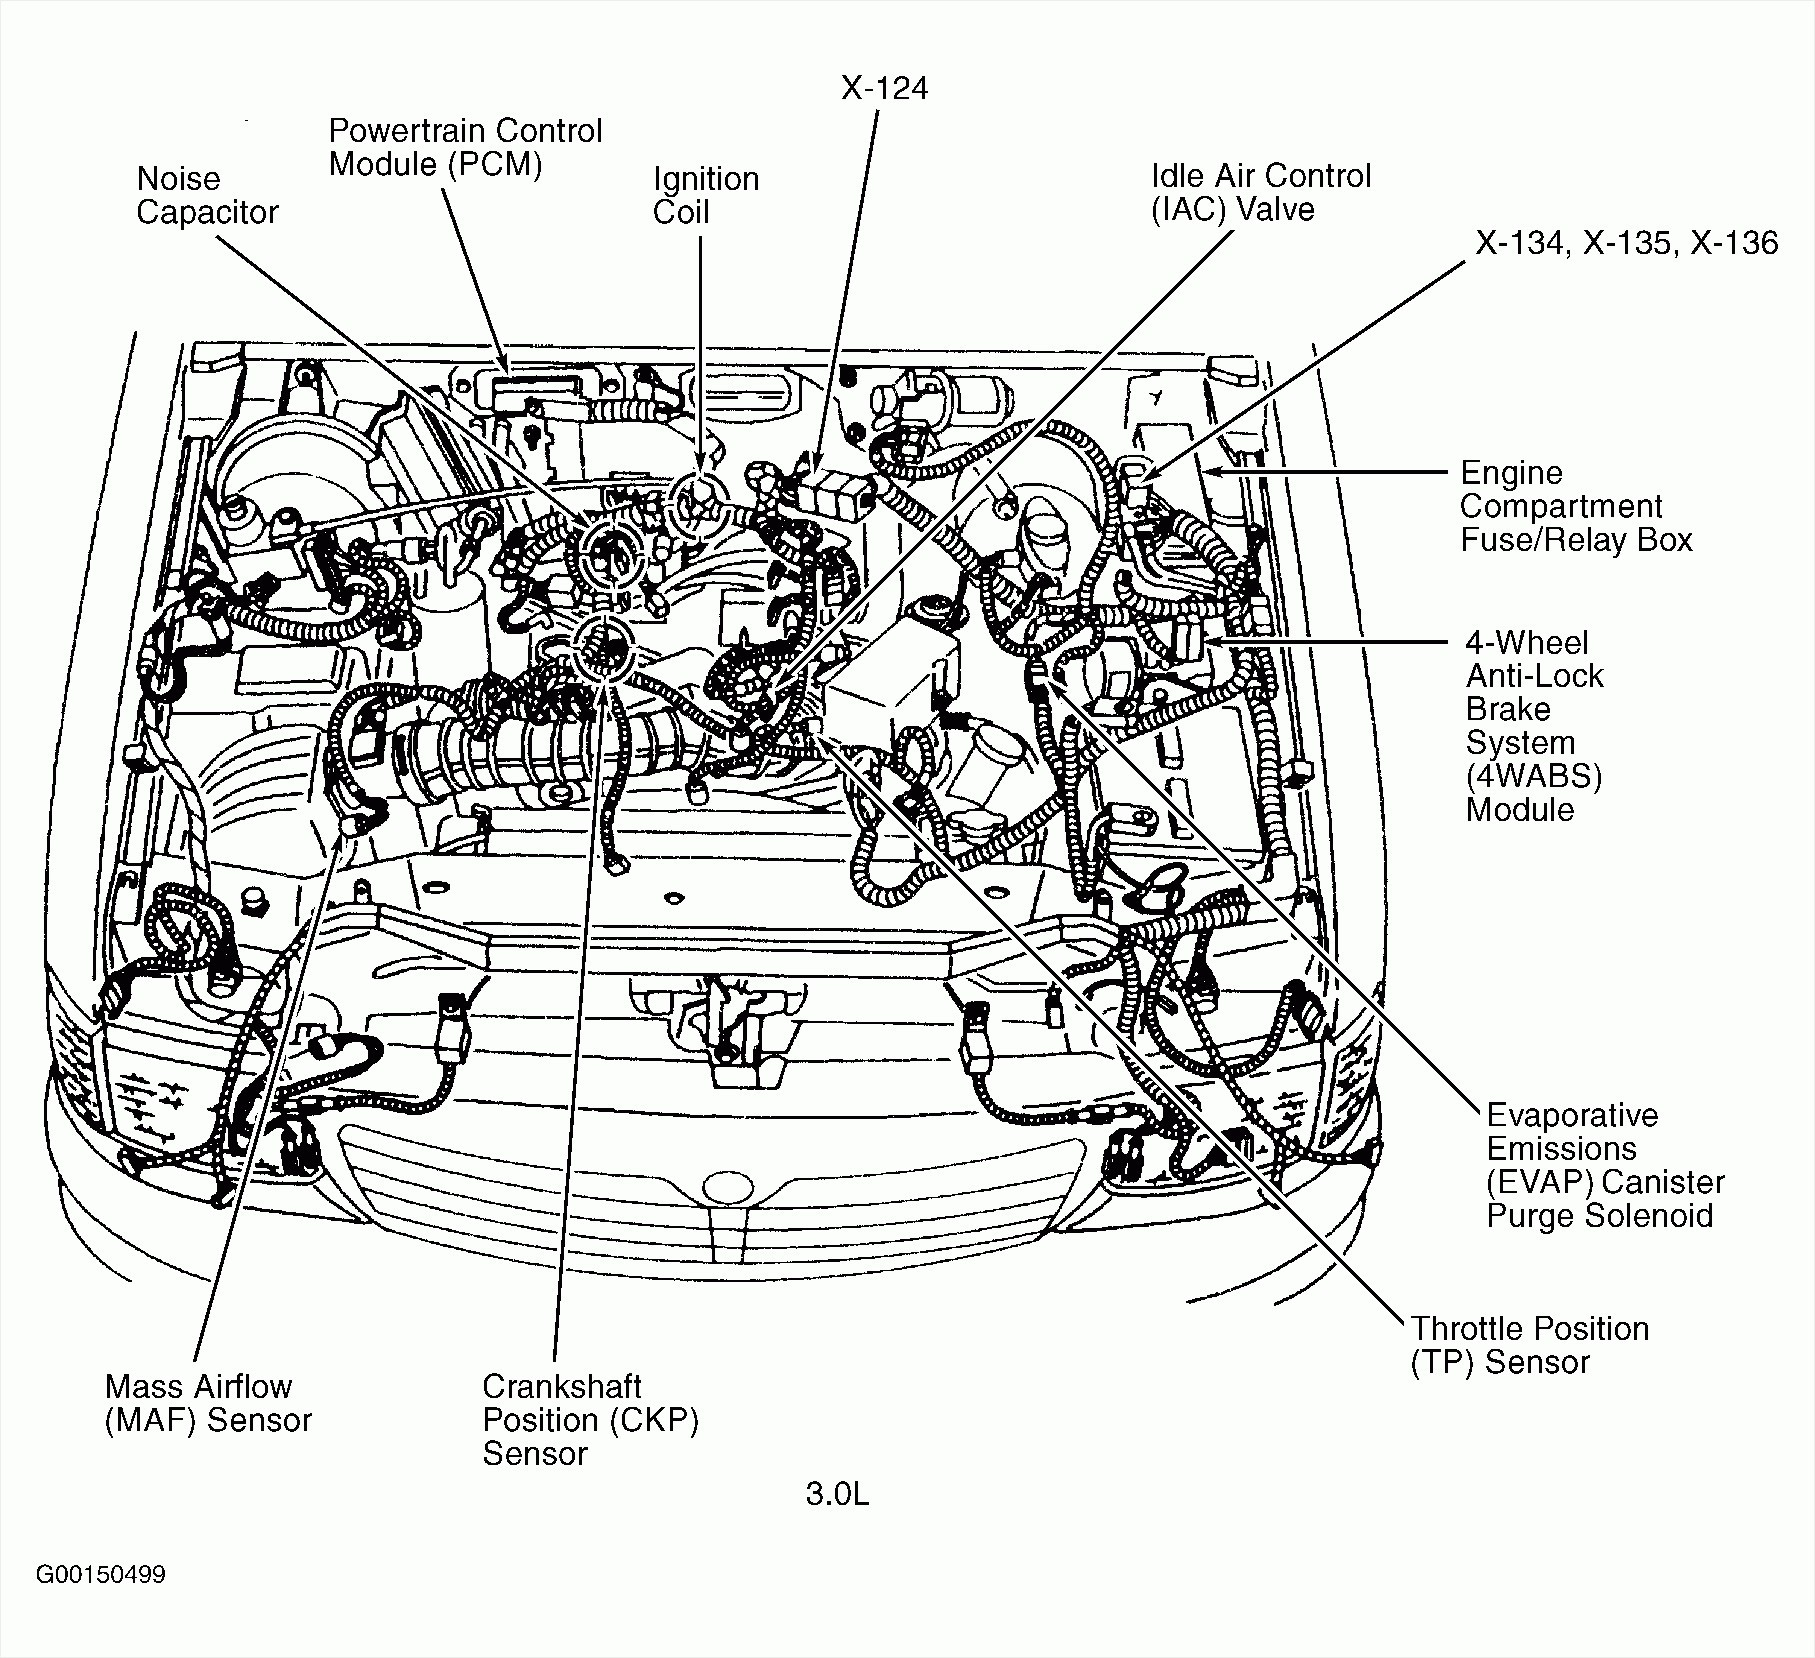 2000 Vw Jetta Parts Diagram Owner Manual Wiring Diagram